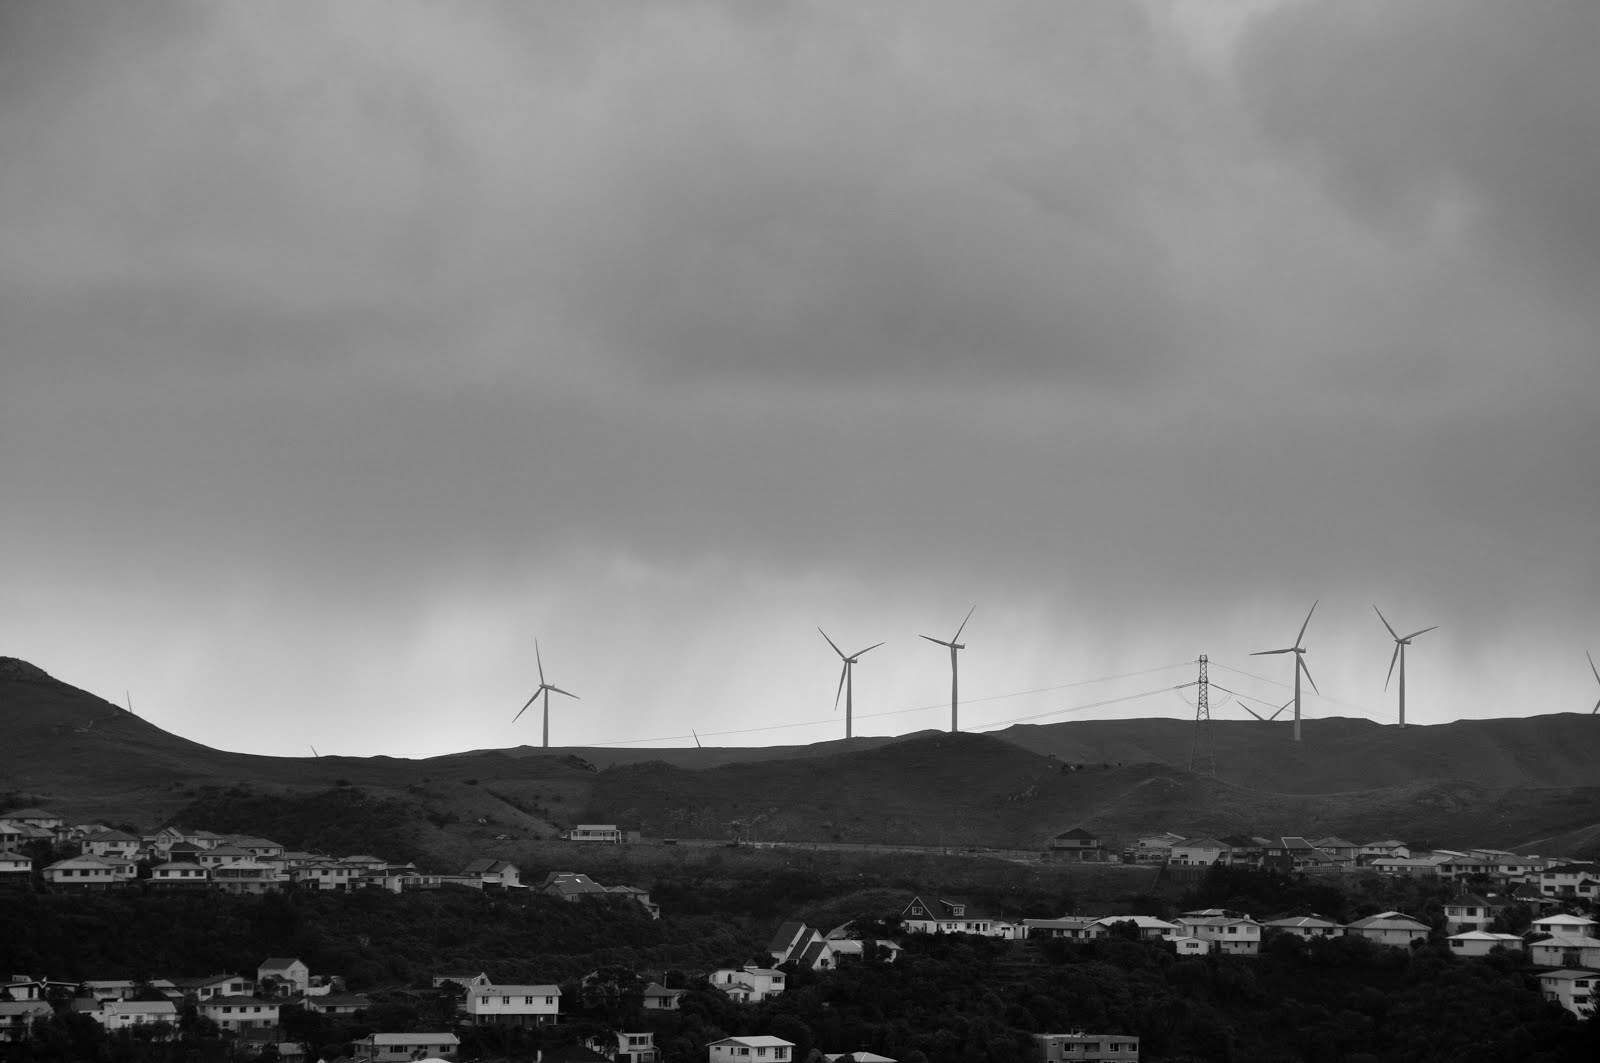 Looking west to spinning wind turbines on a cold grey afternoon